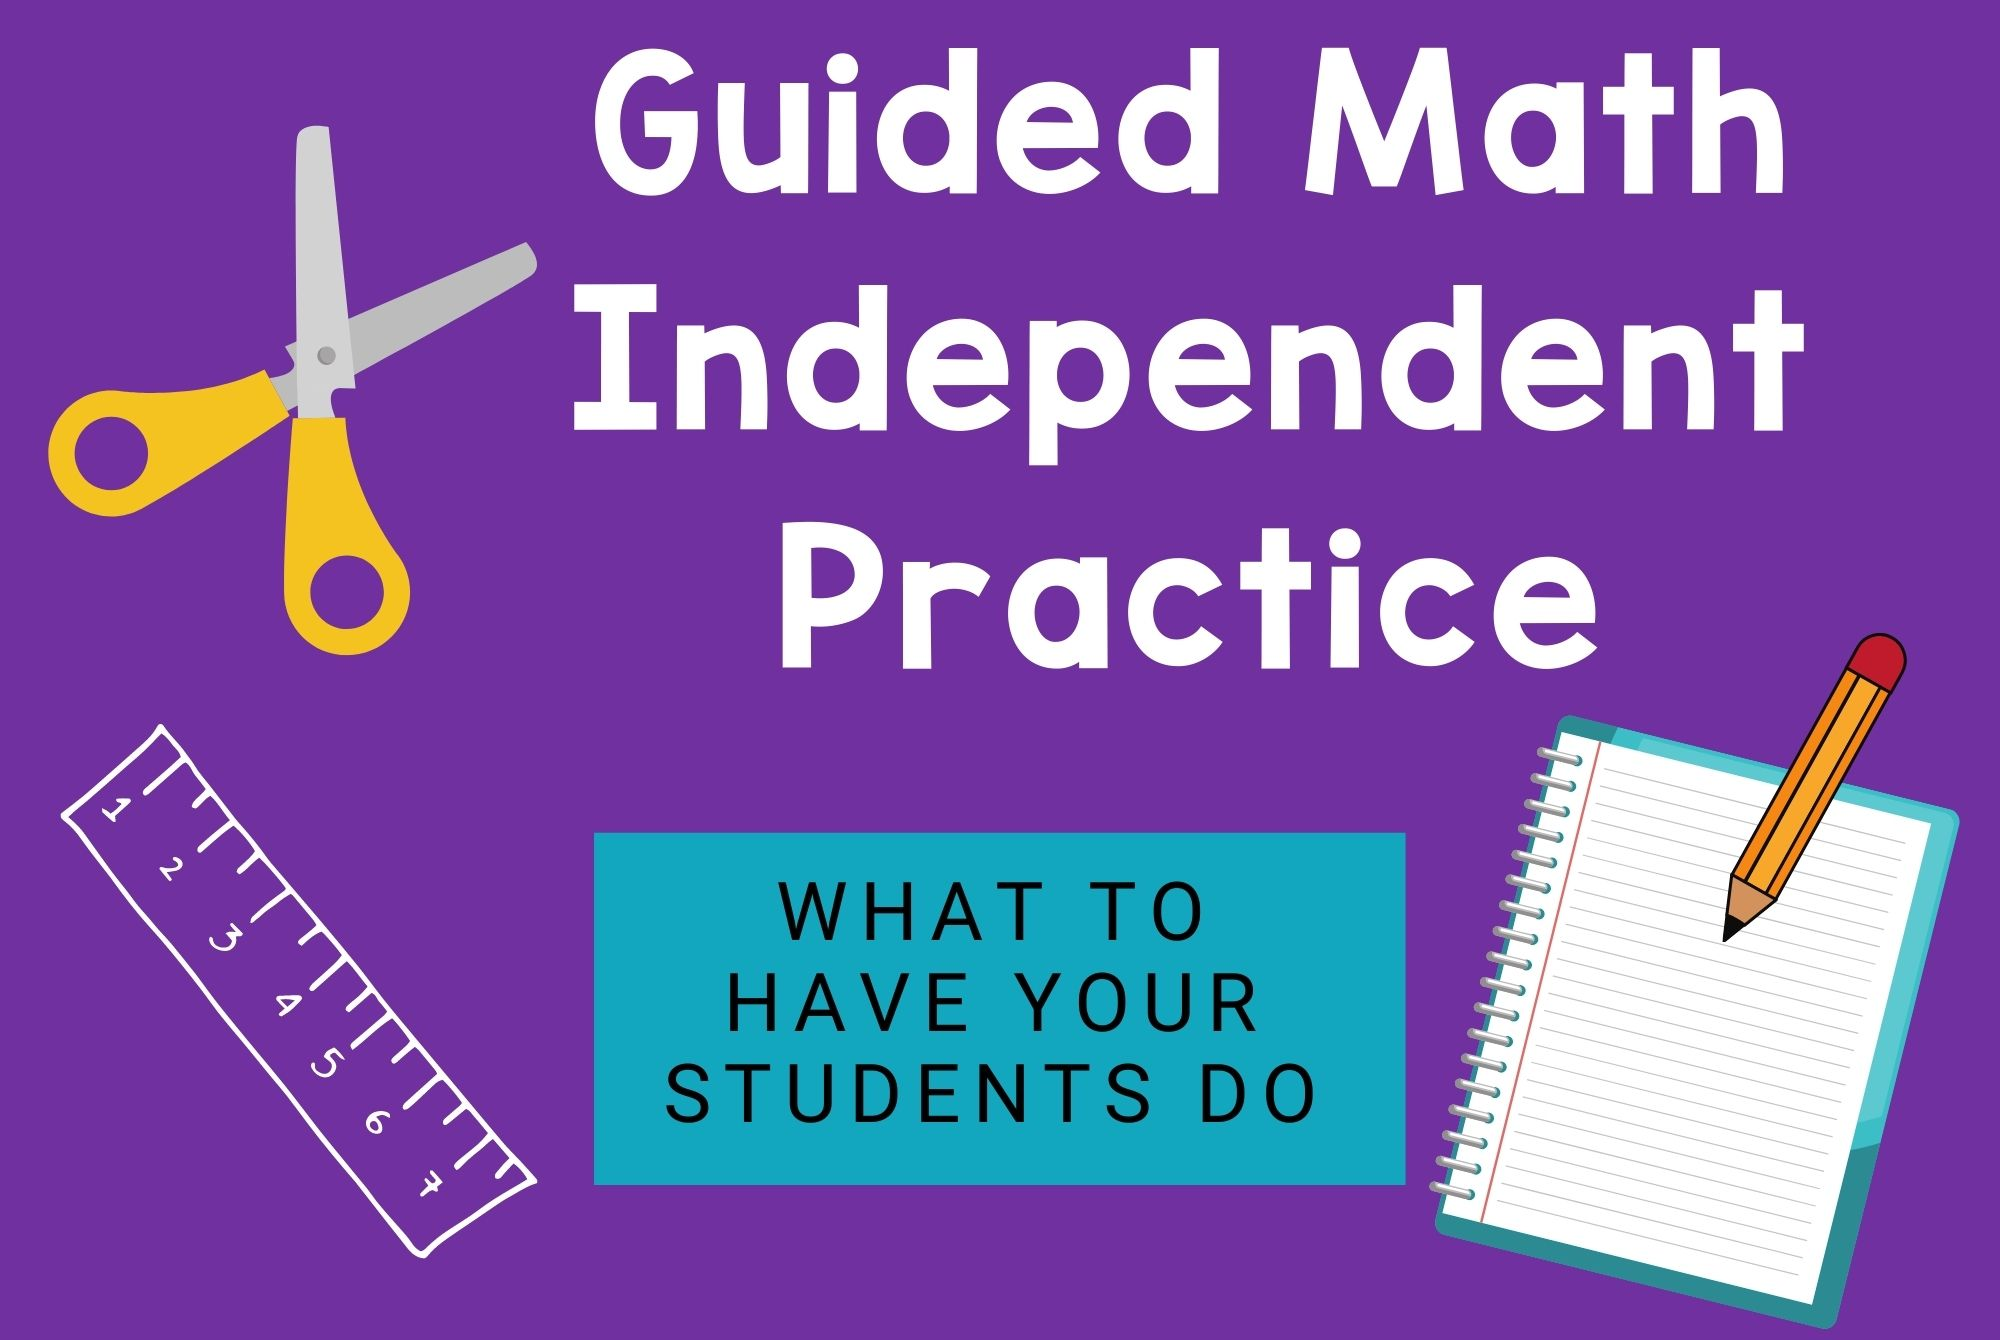 Guided Math Independent Practice